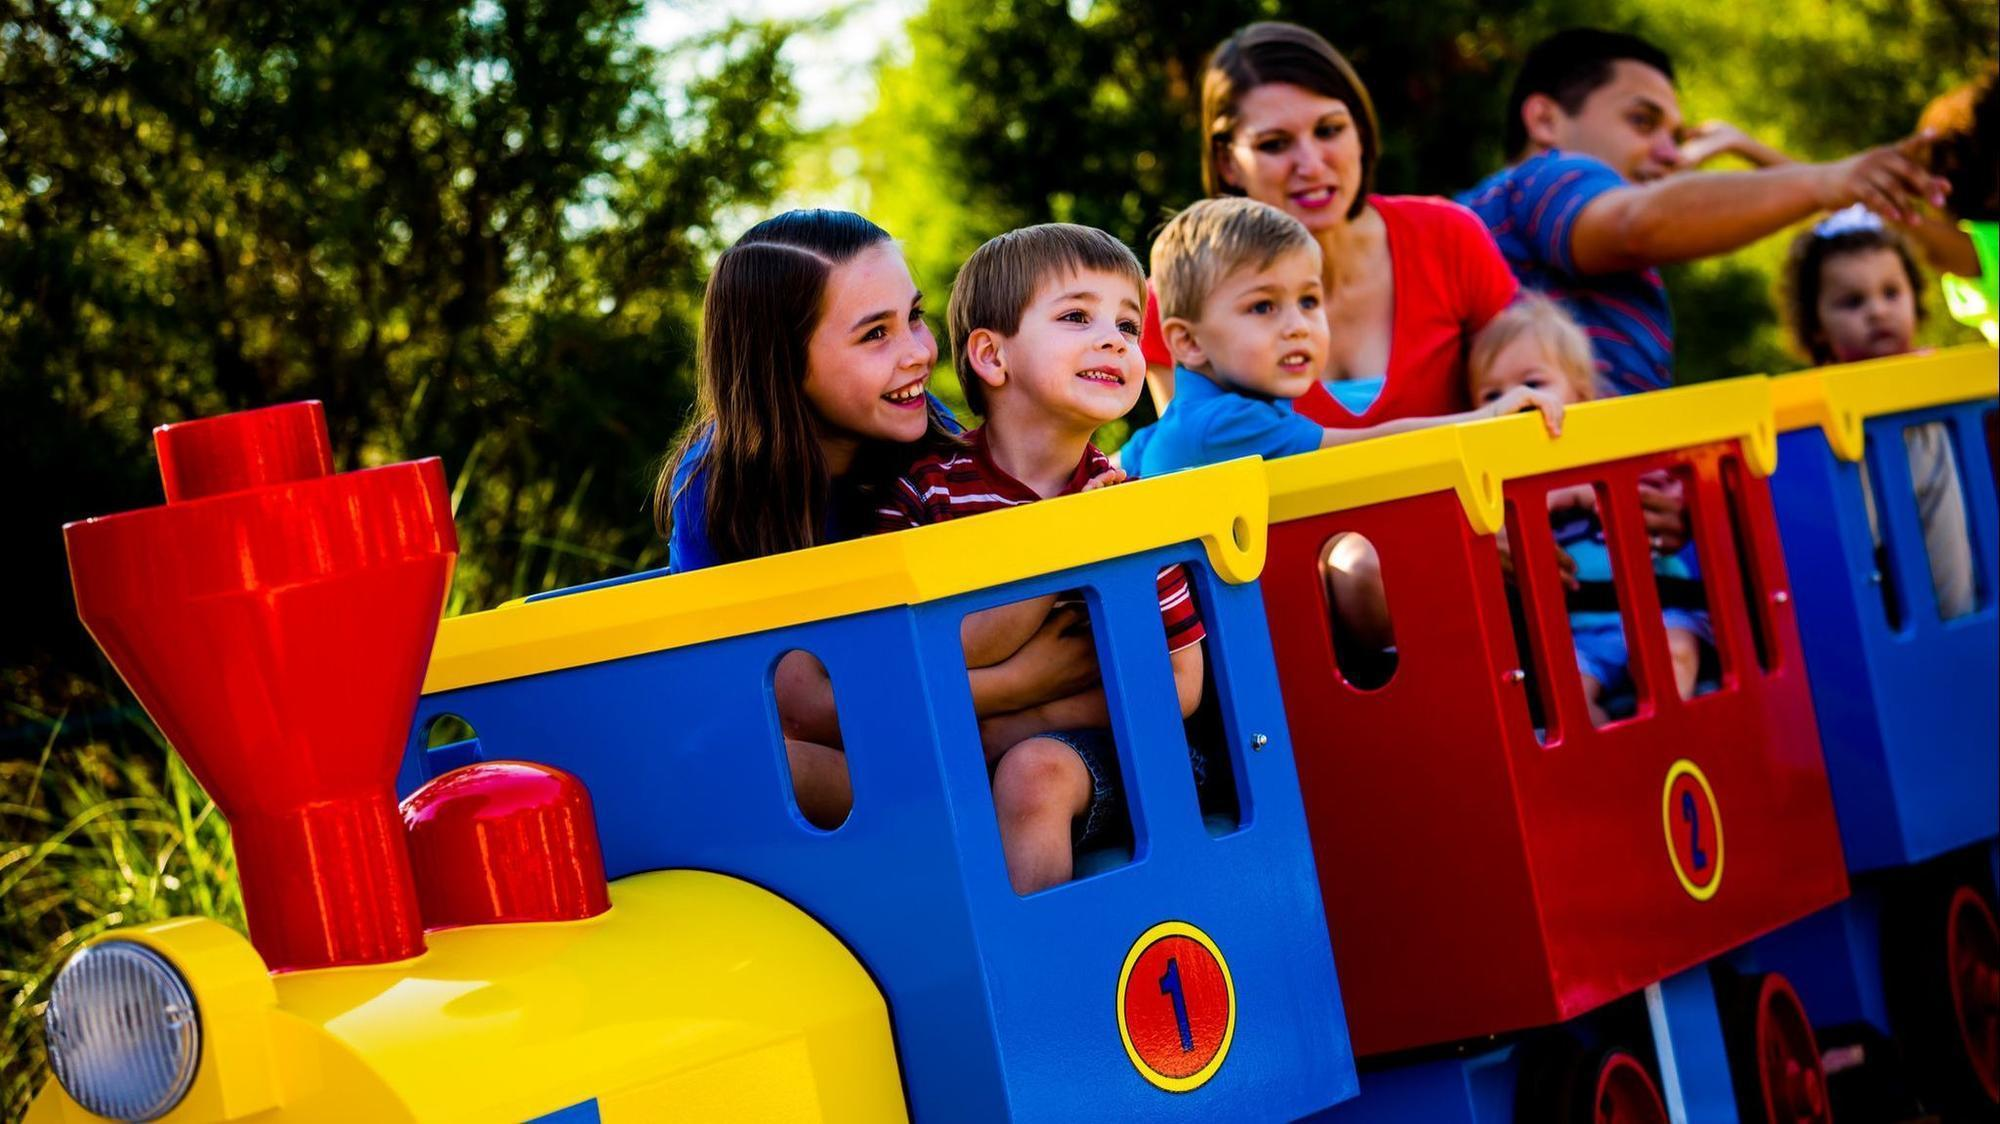 Legoland Florida Free Annual Passes For 3 Year Olds 4 Year Olds